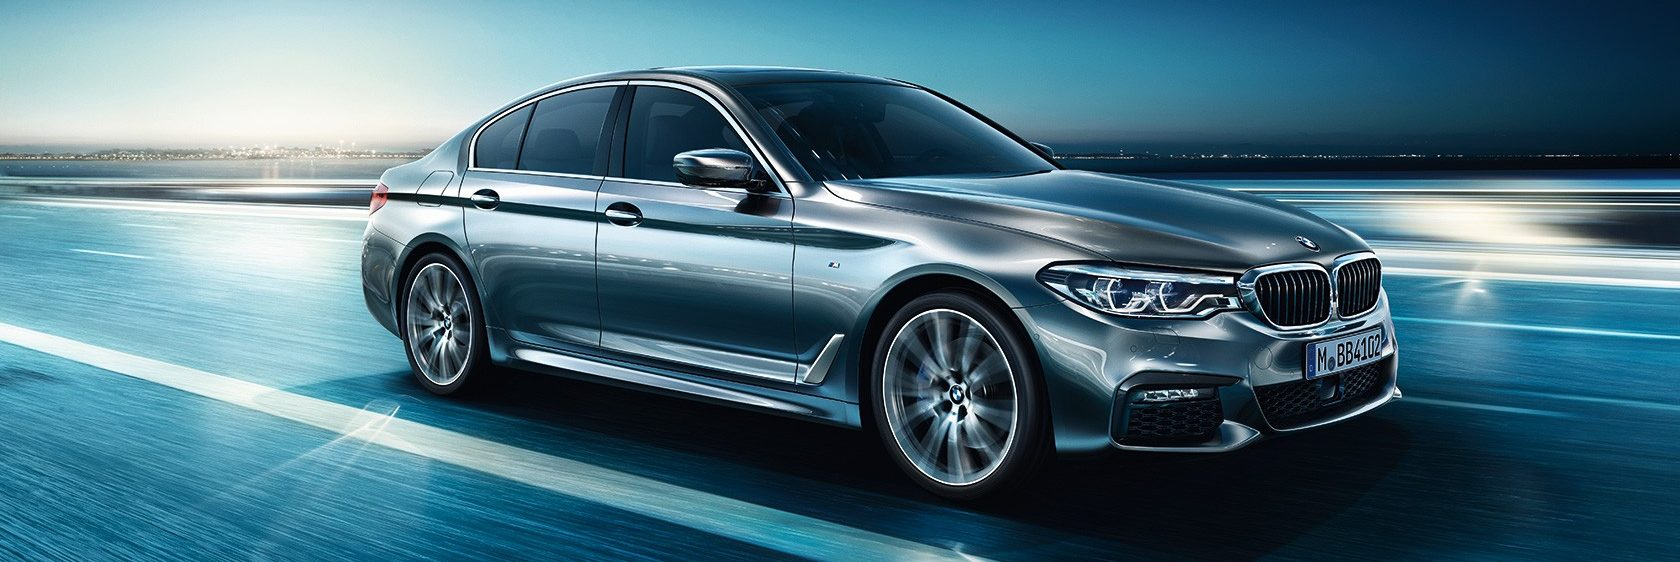 BMW 5 Series driving on a futuristic open road